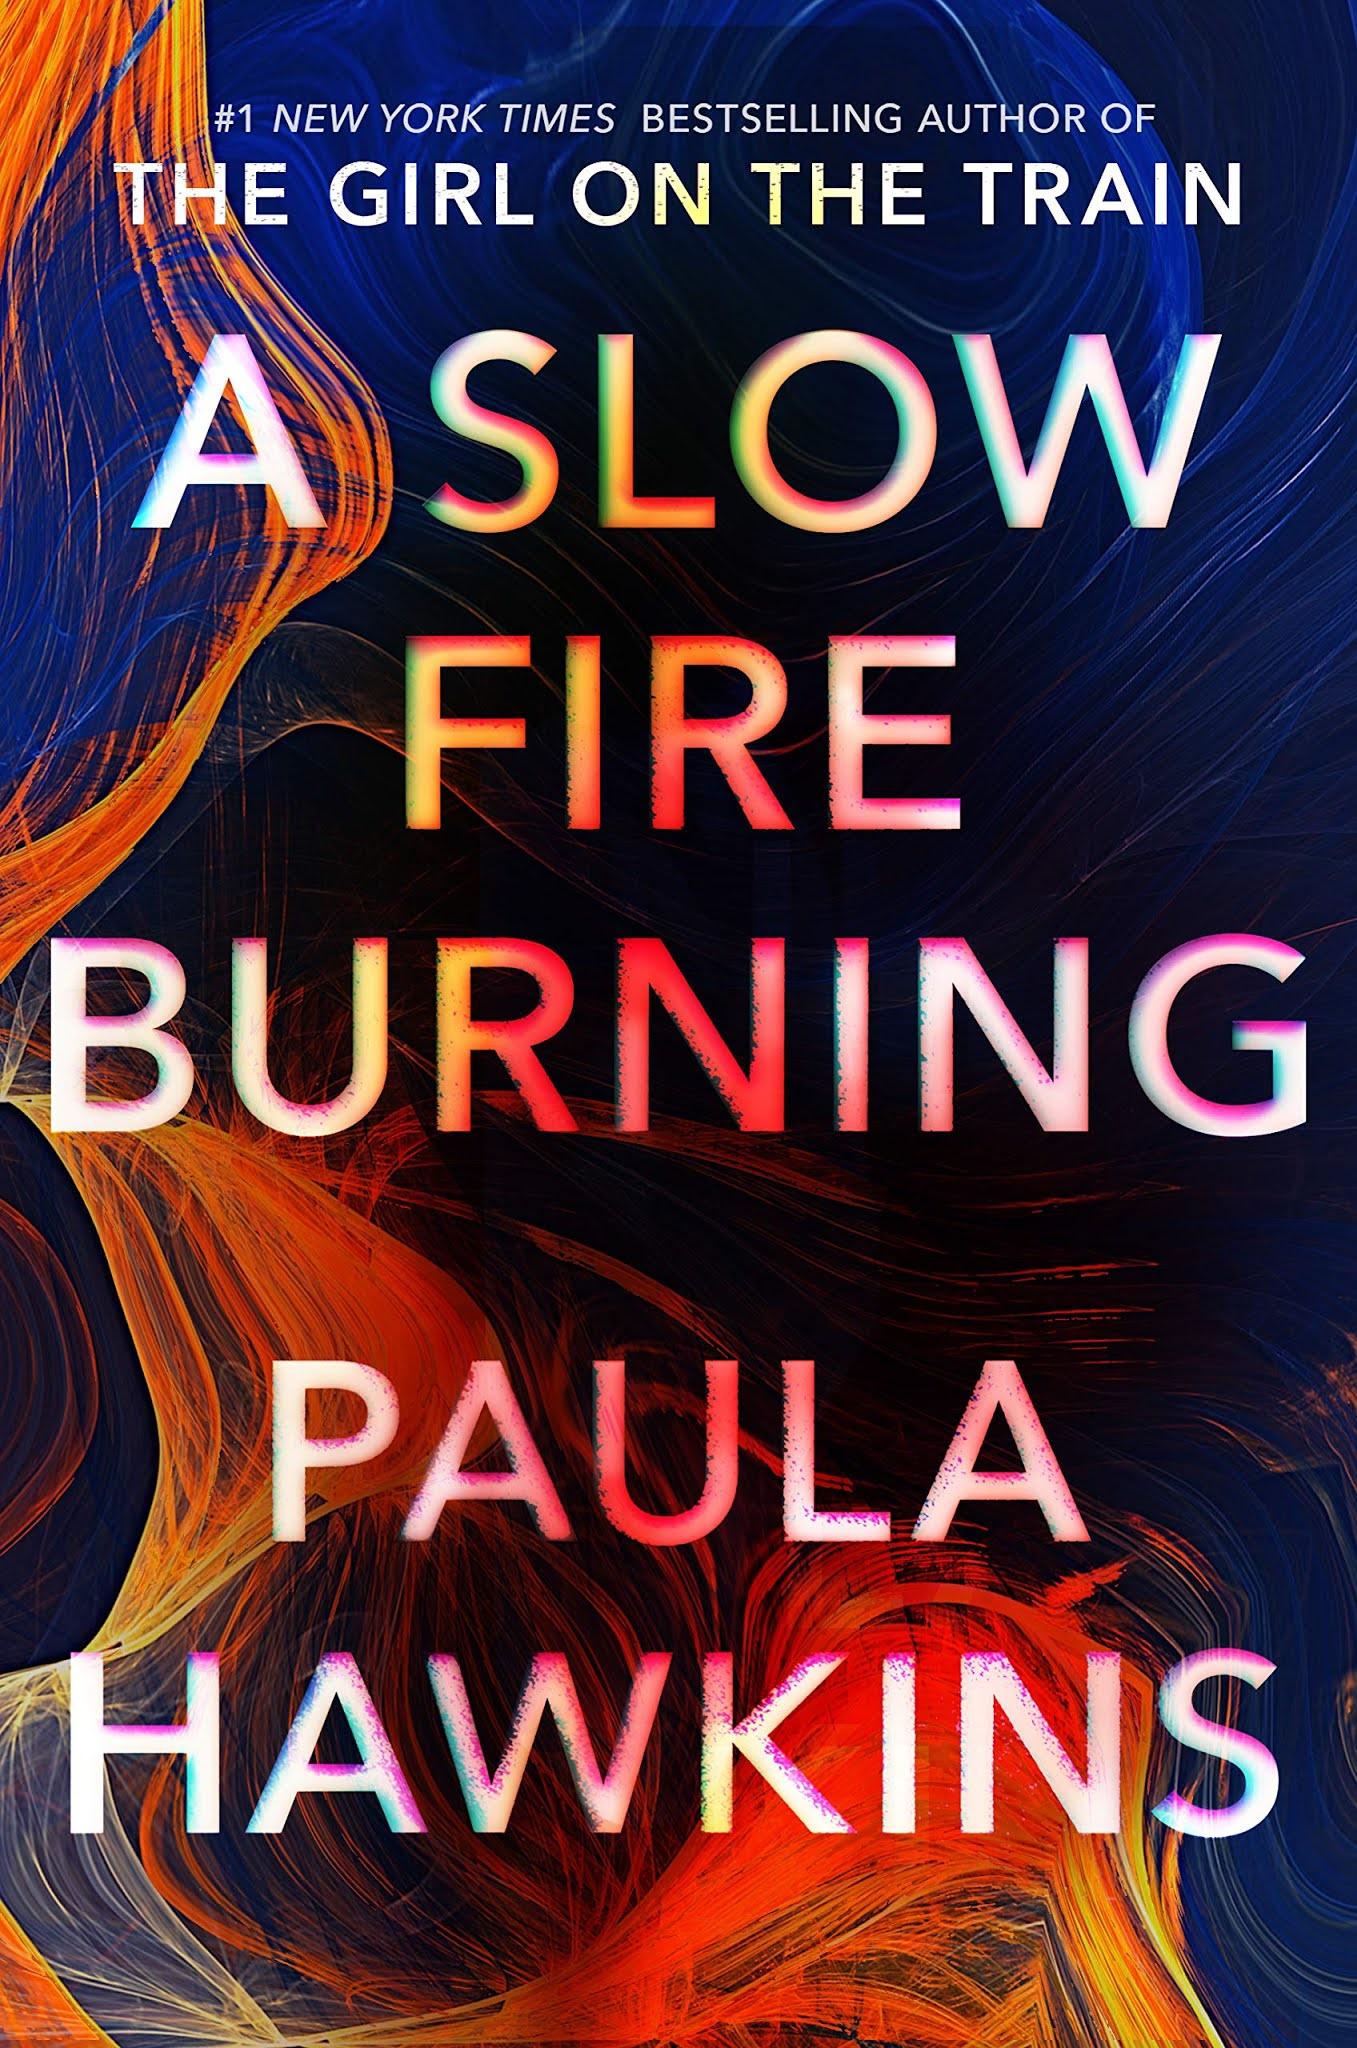 A Slow Fire Burning by Paula Hawkins